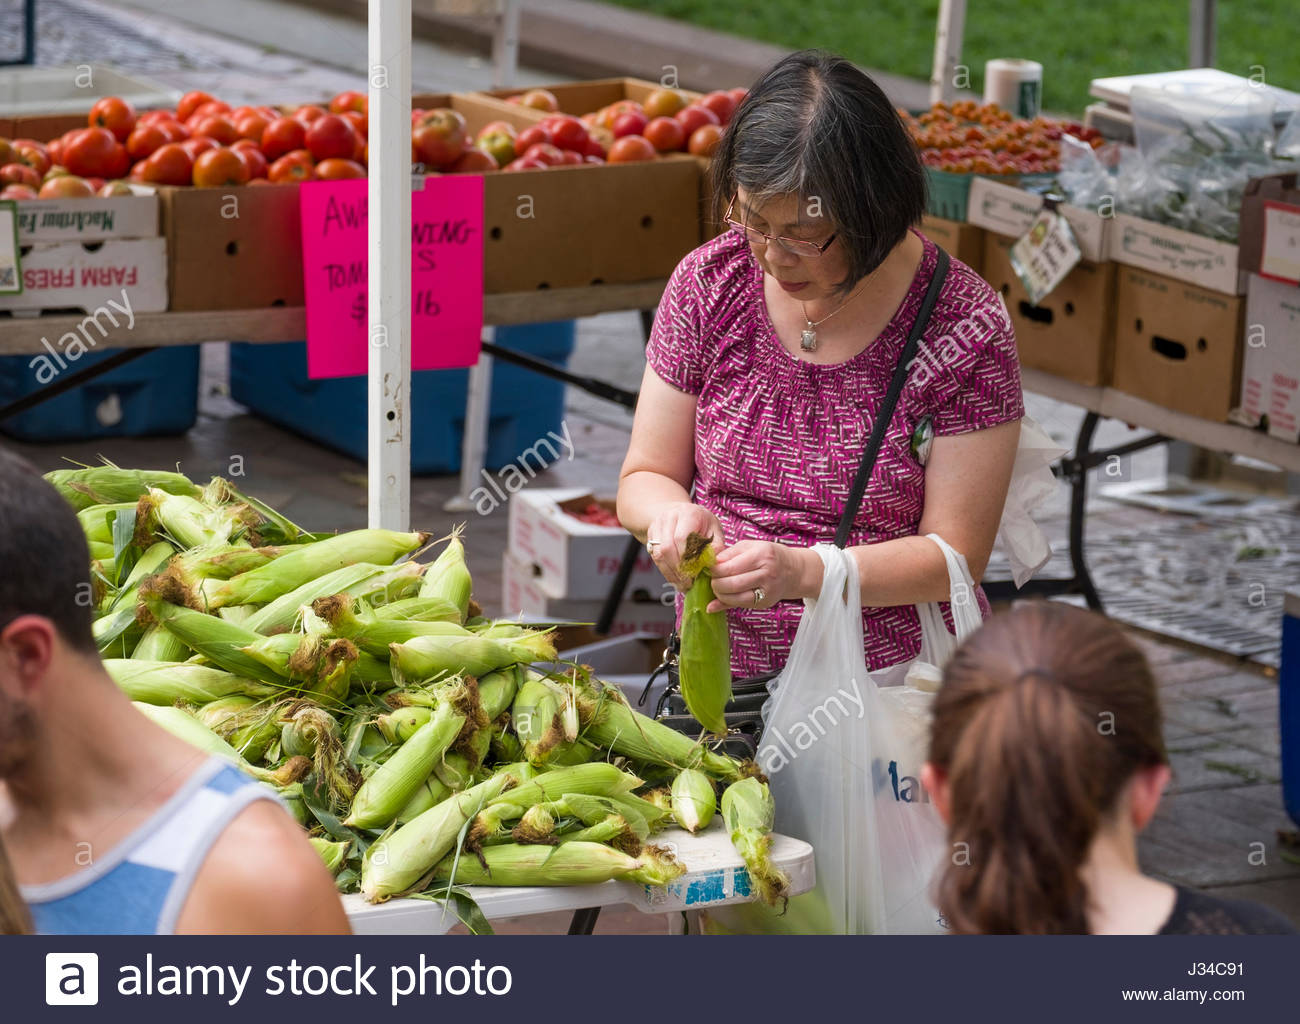 Woman looking at fresh ears of corn at farmers market, Copley Square, Boston, Suffolk County, Massachusetts, USA - Stock Image